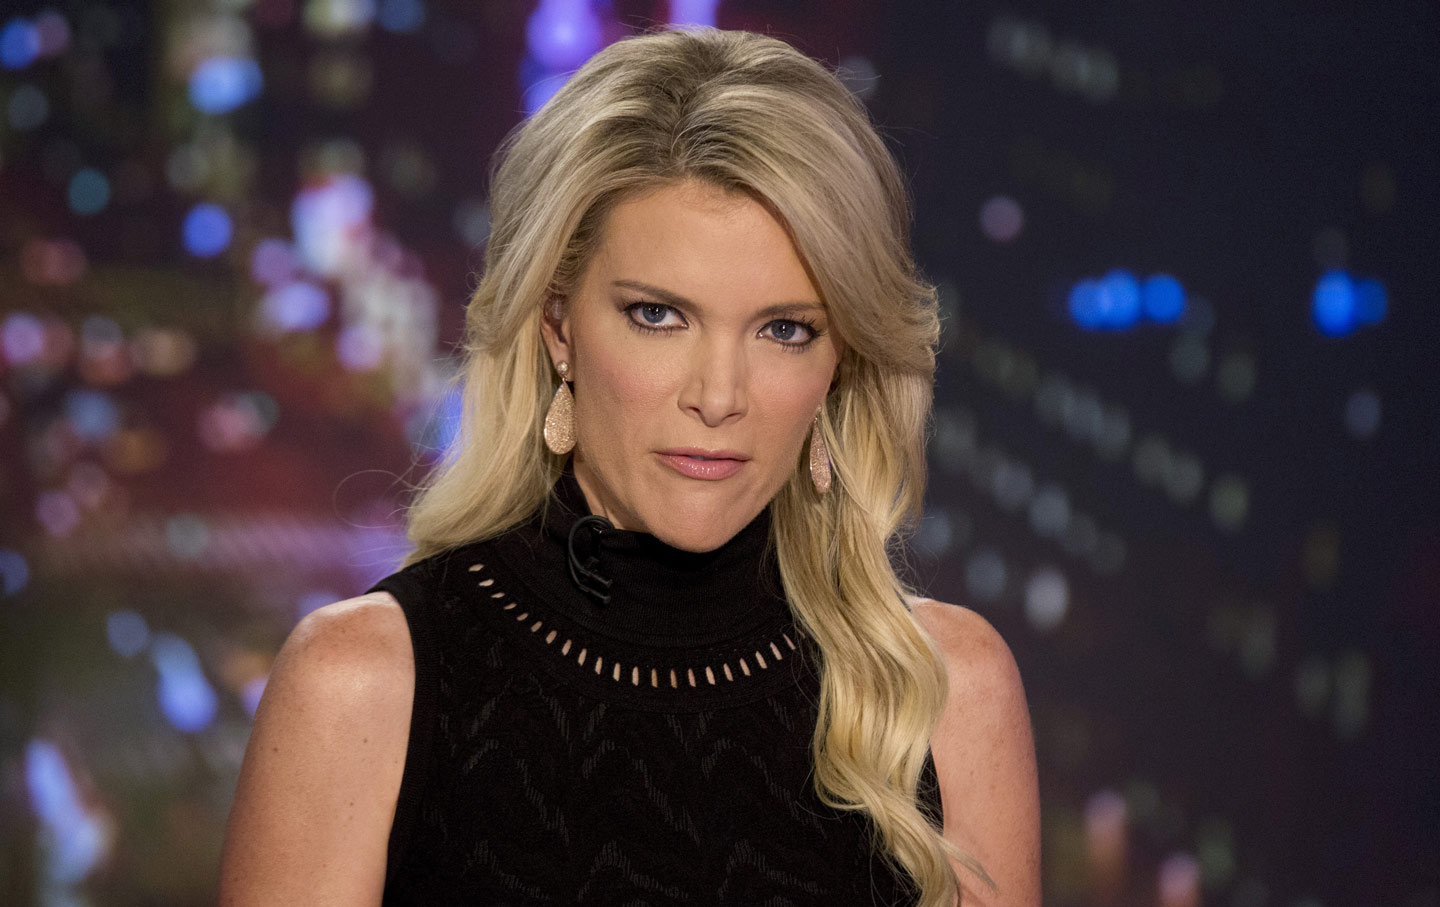 The Megyn Kelly Syndrome Strikes Again